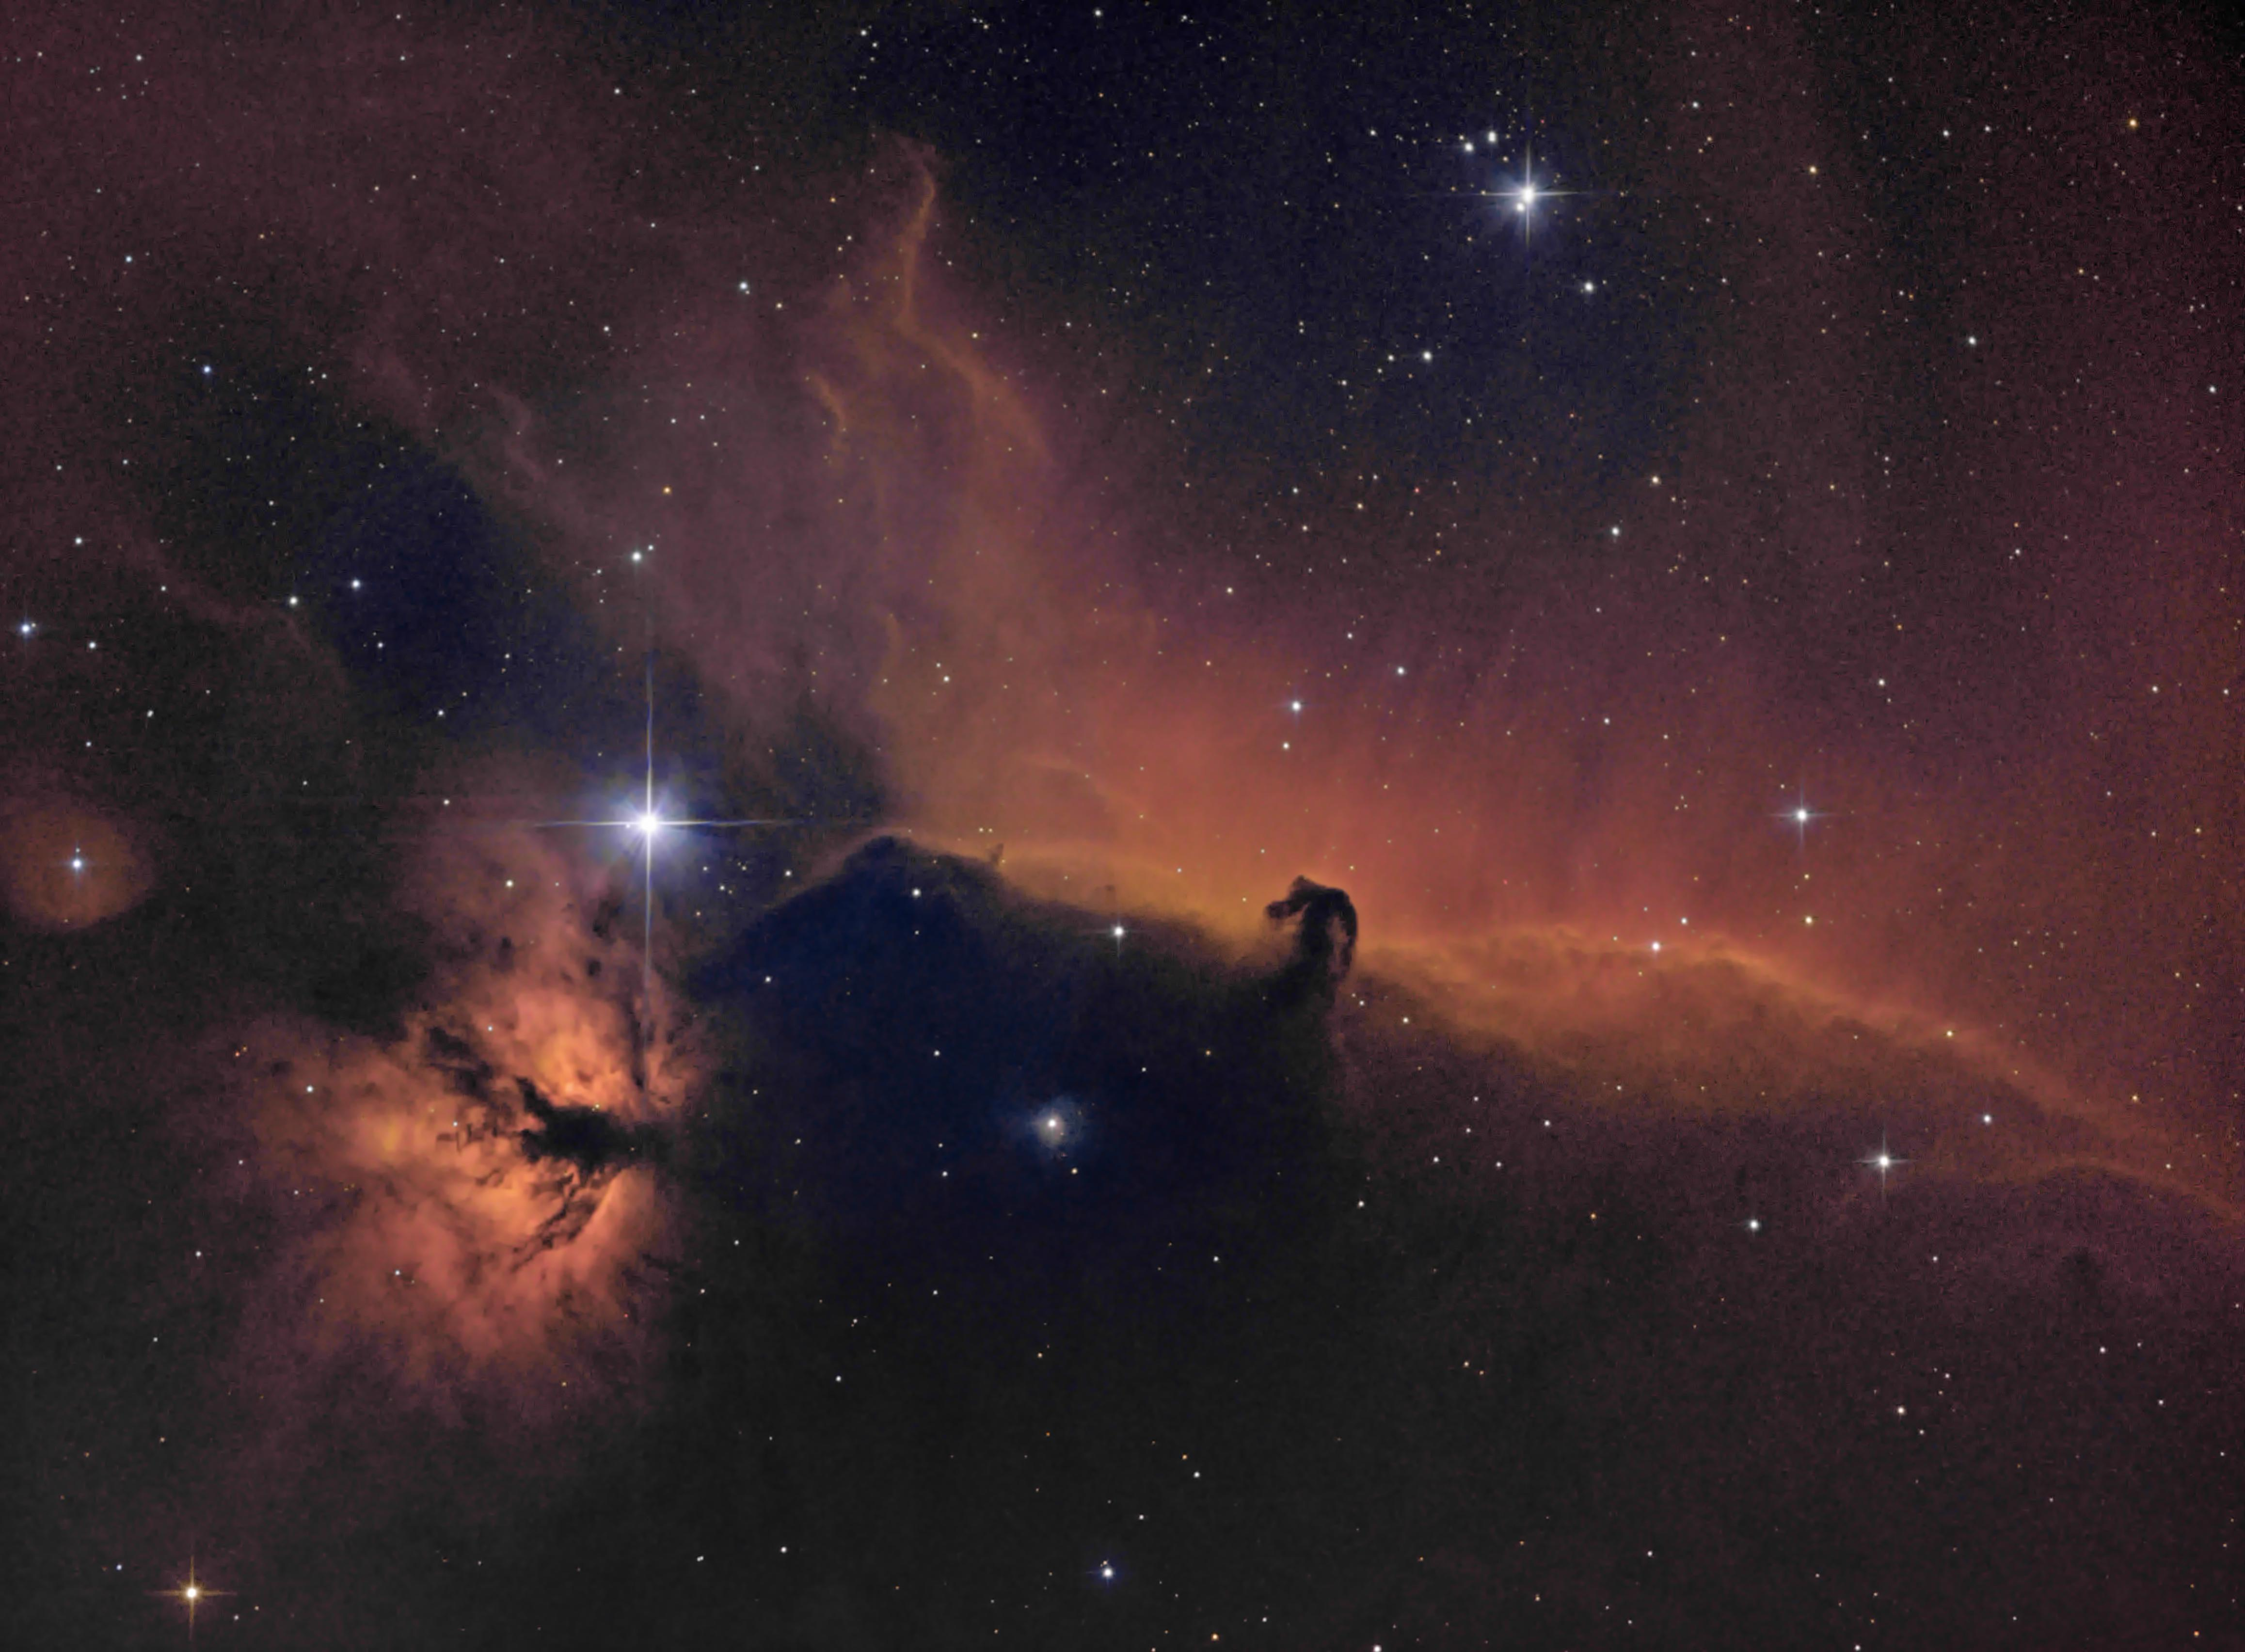 The Horsehead and Flame Nebulas, imaged in narrowband